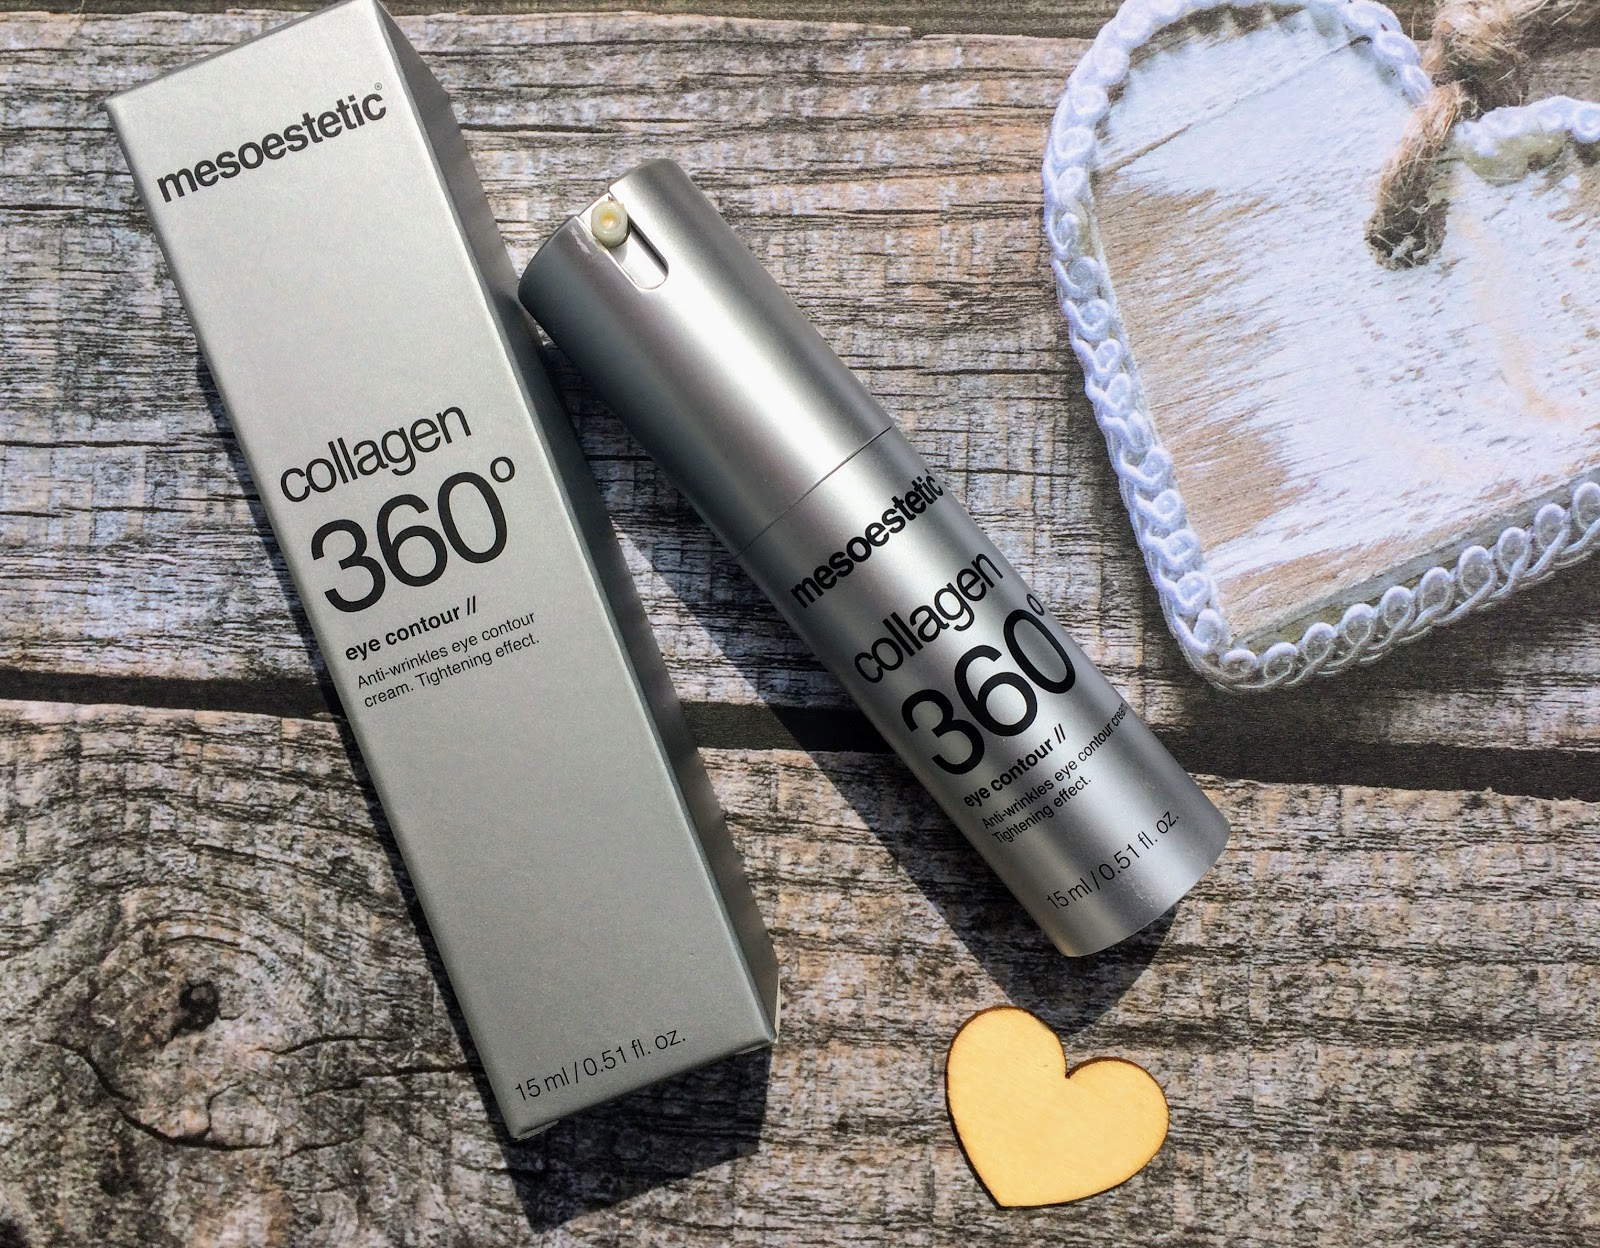 mesoestetic 360 eye cream